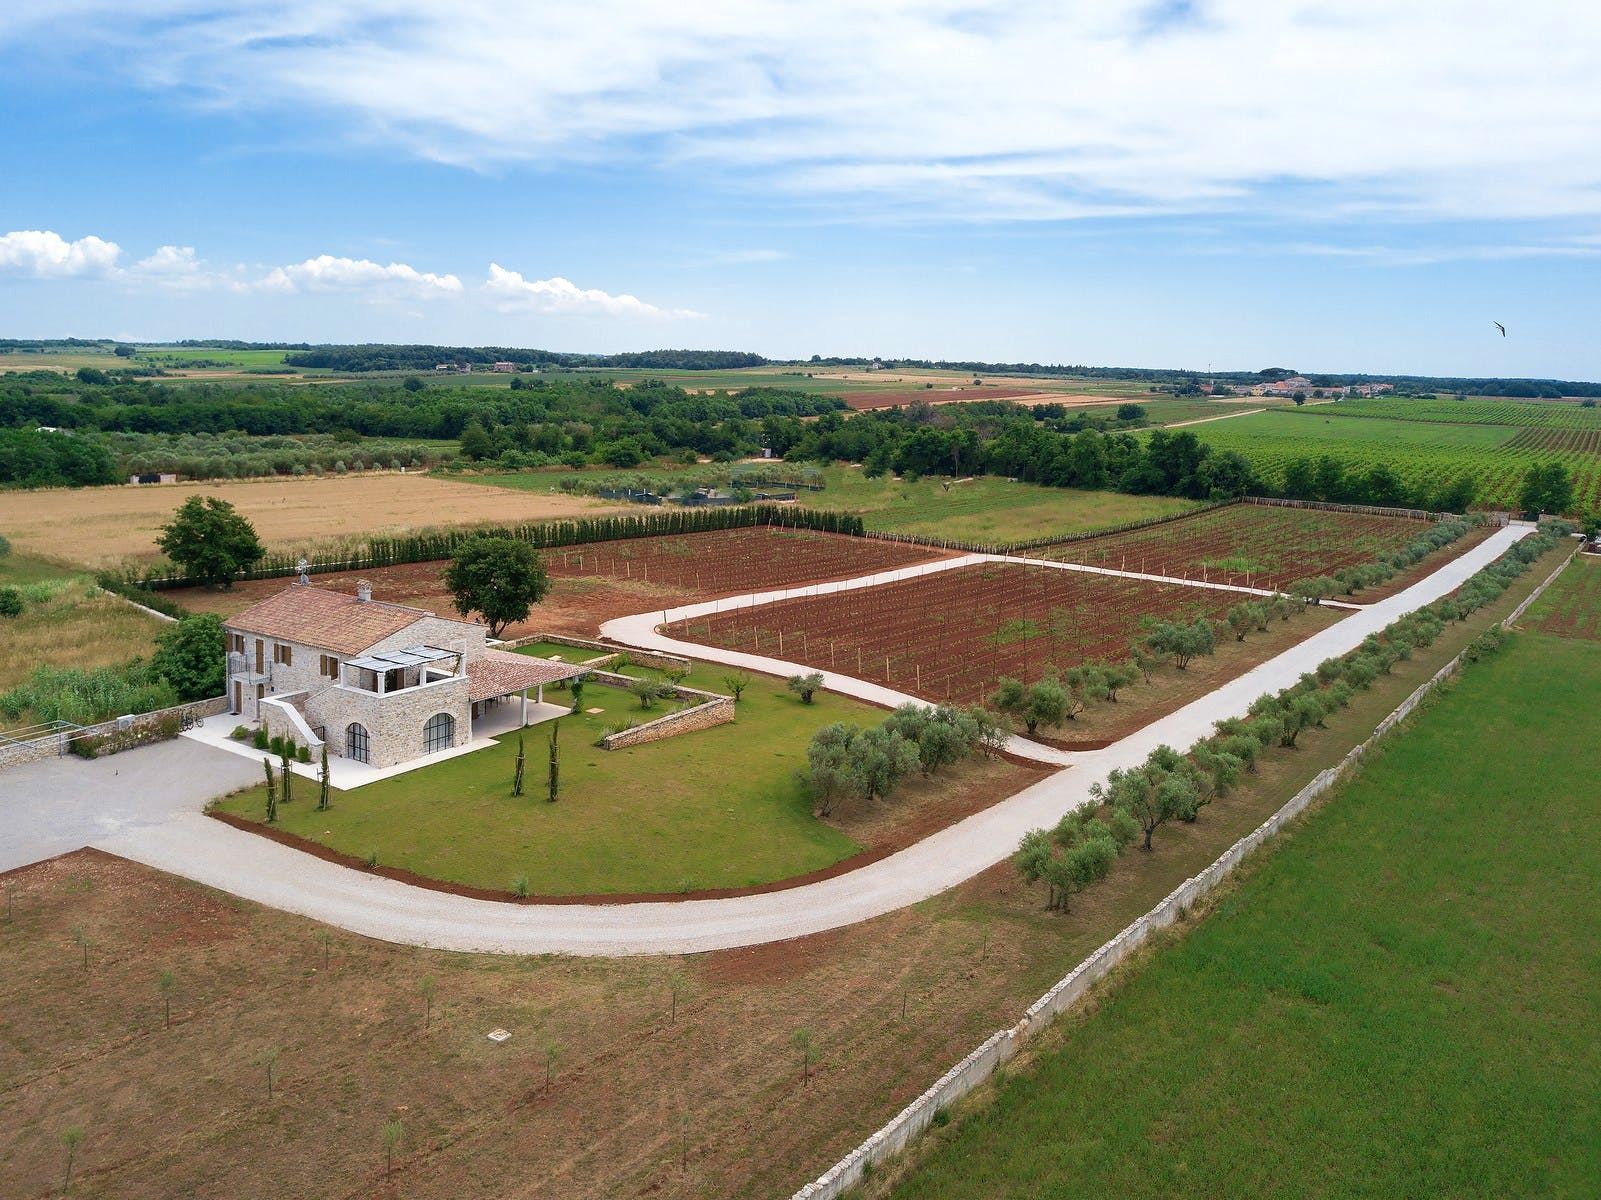 Villa for rent on a large cultivated plot